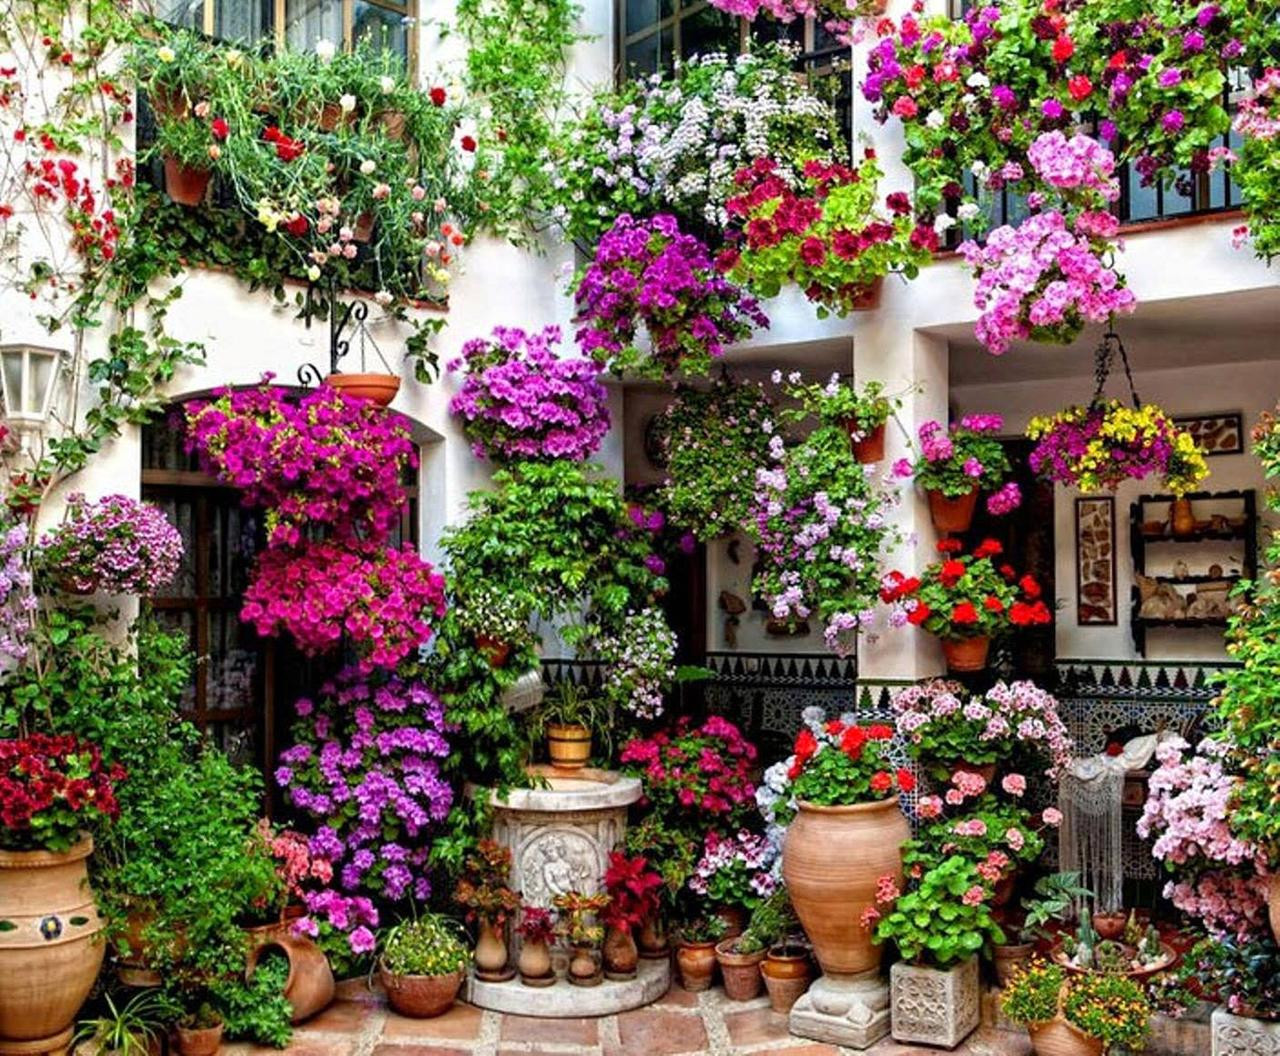 A Two-Story Hanging Garden of Flowers